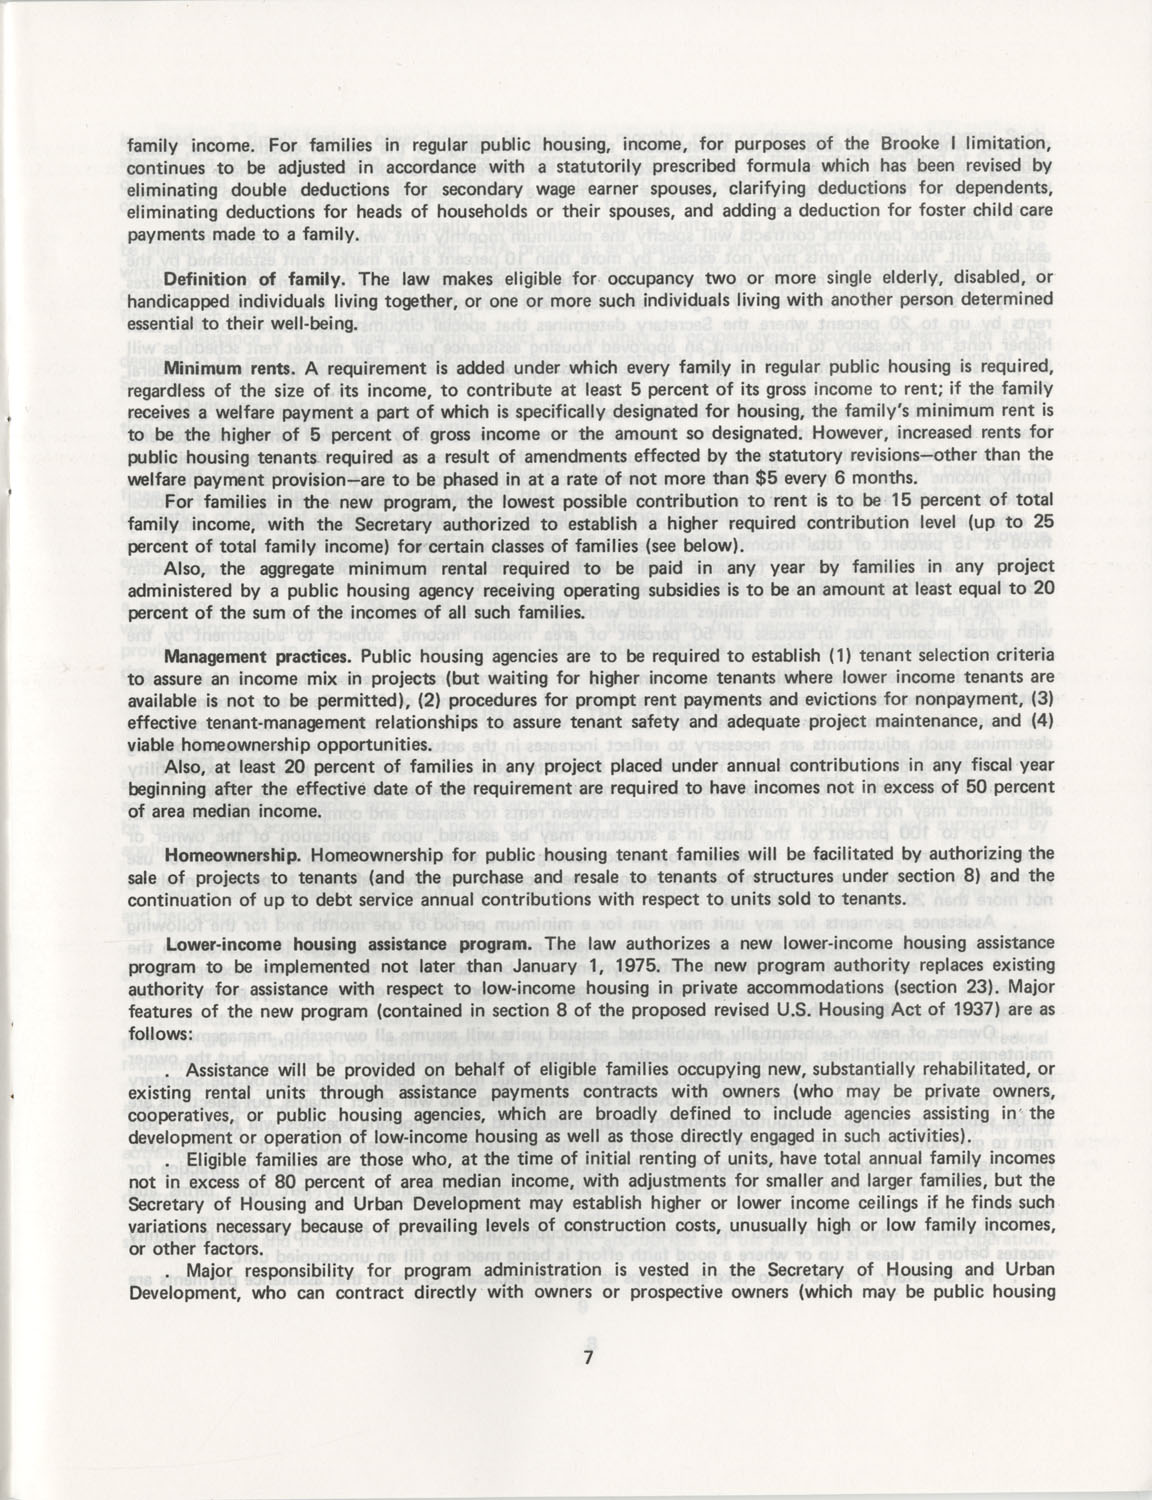 Summary of the Housing and Community Development Act of 1974, Page 7